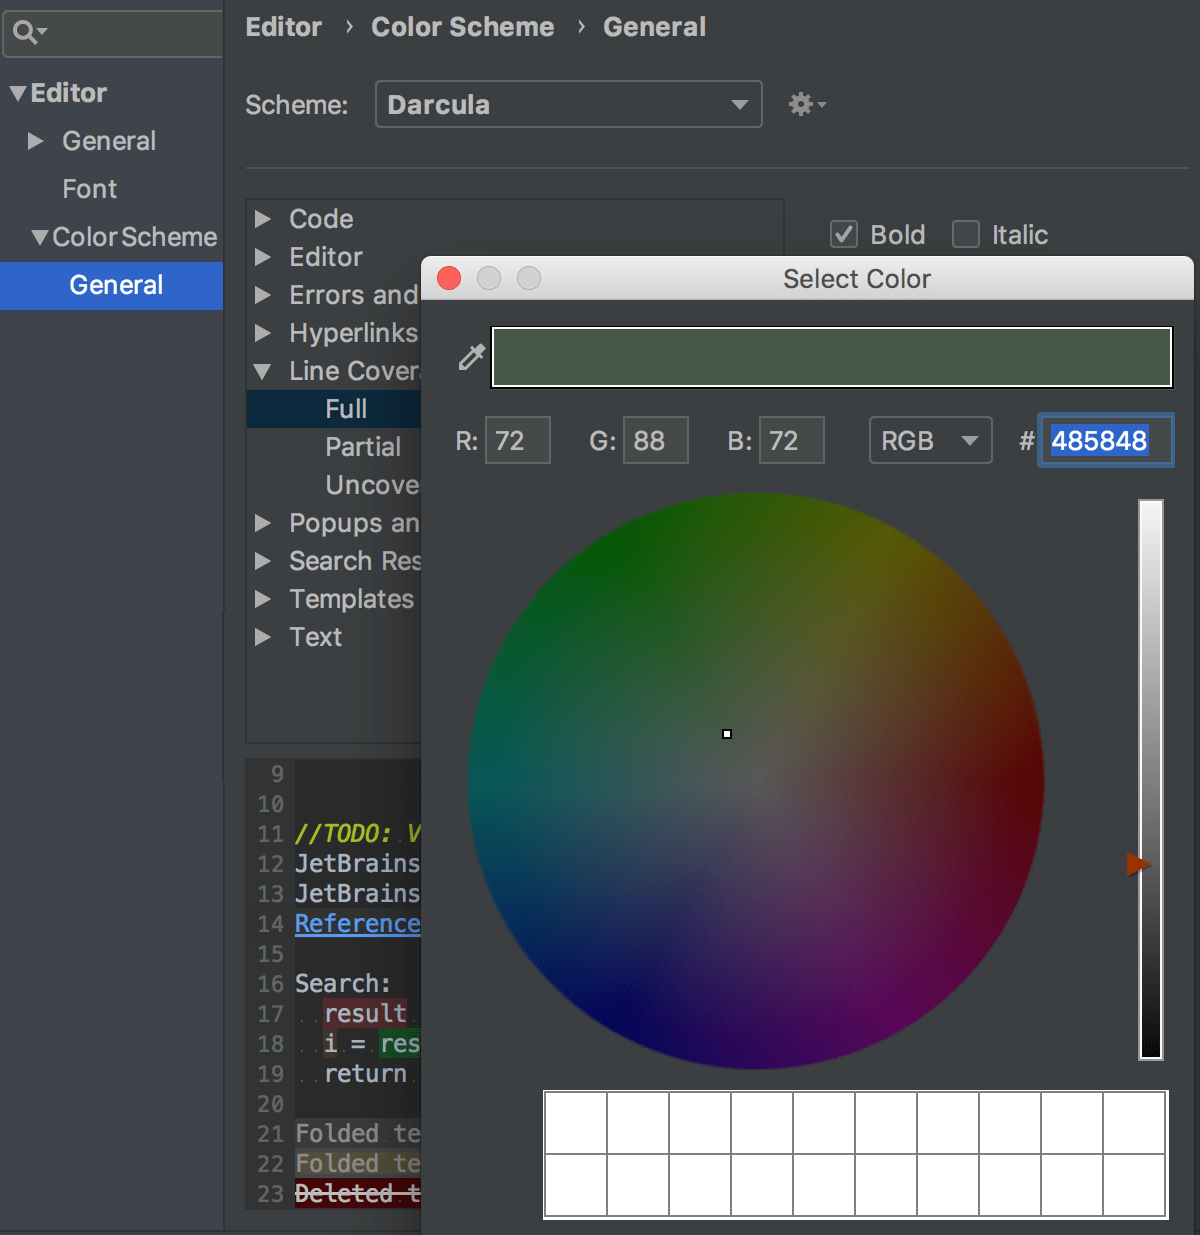 Configuring colors for indicating coverage status in the editor